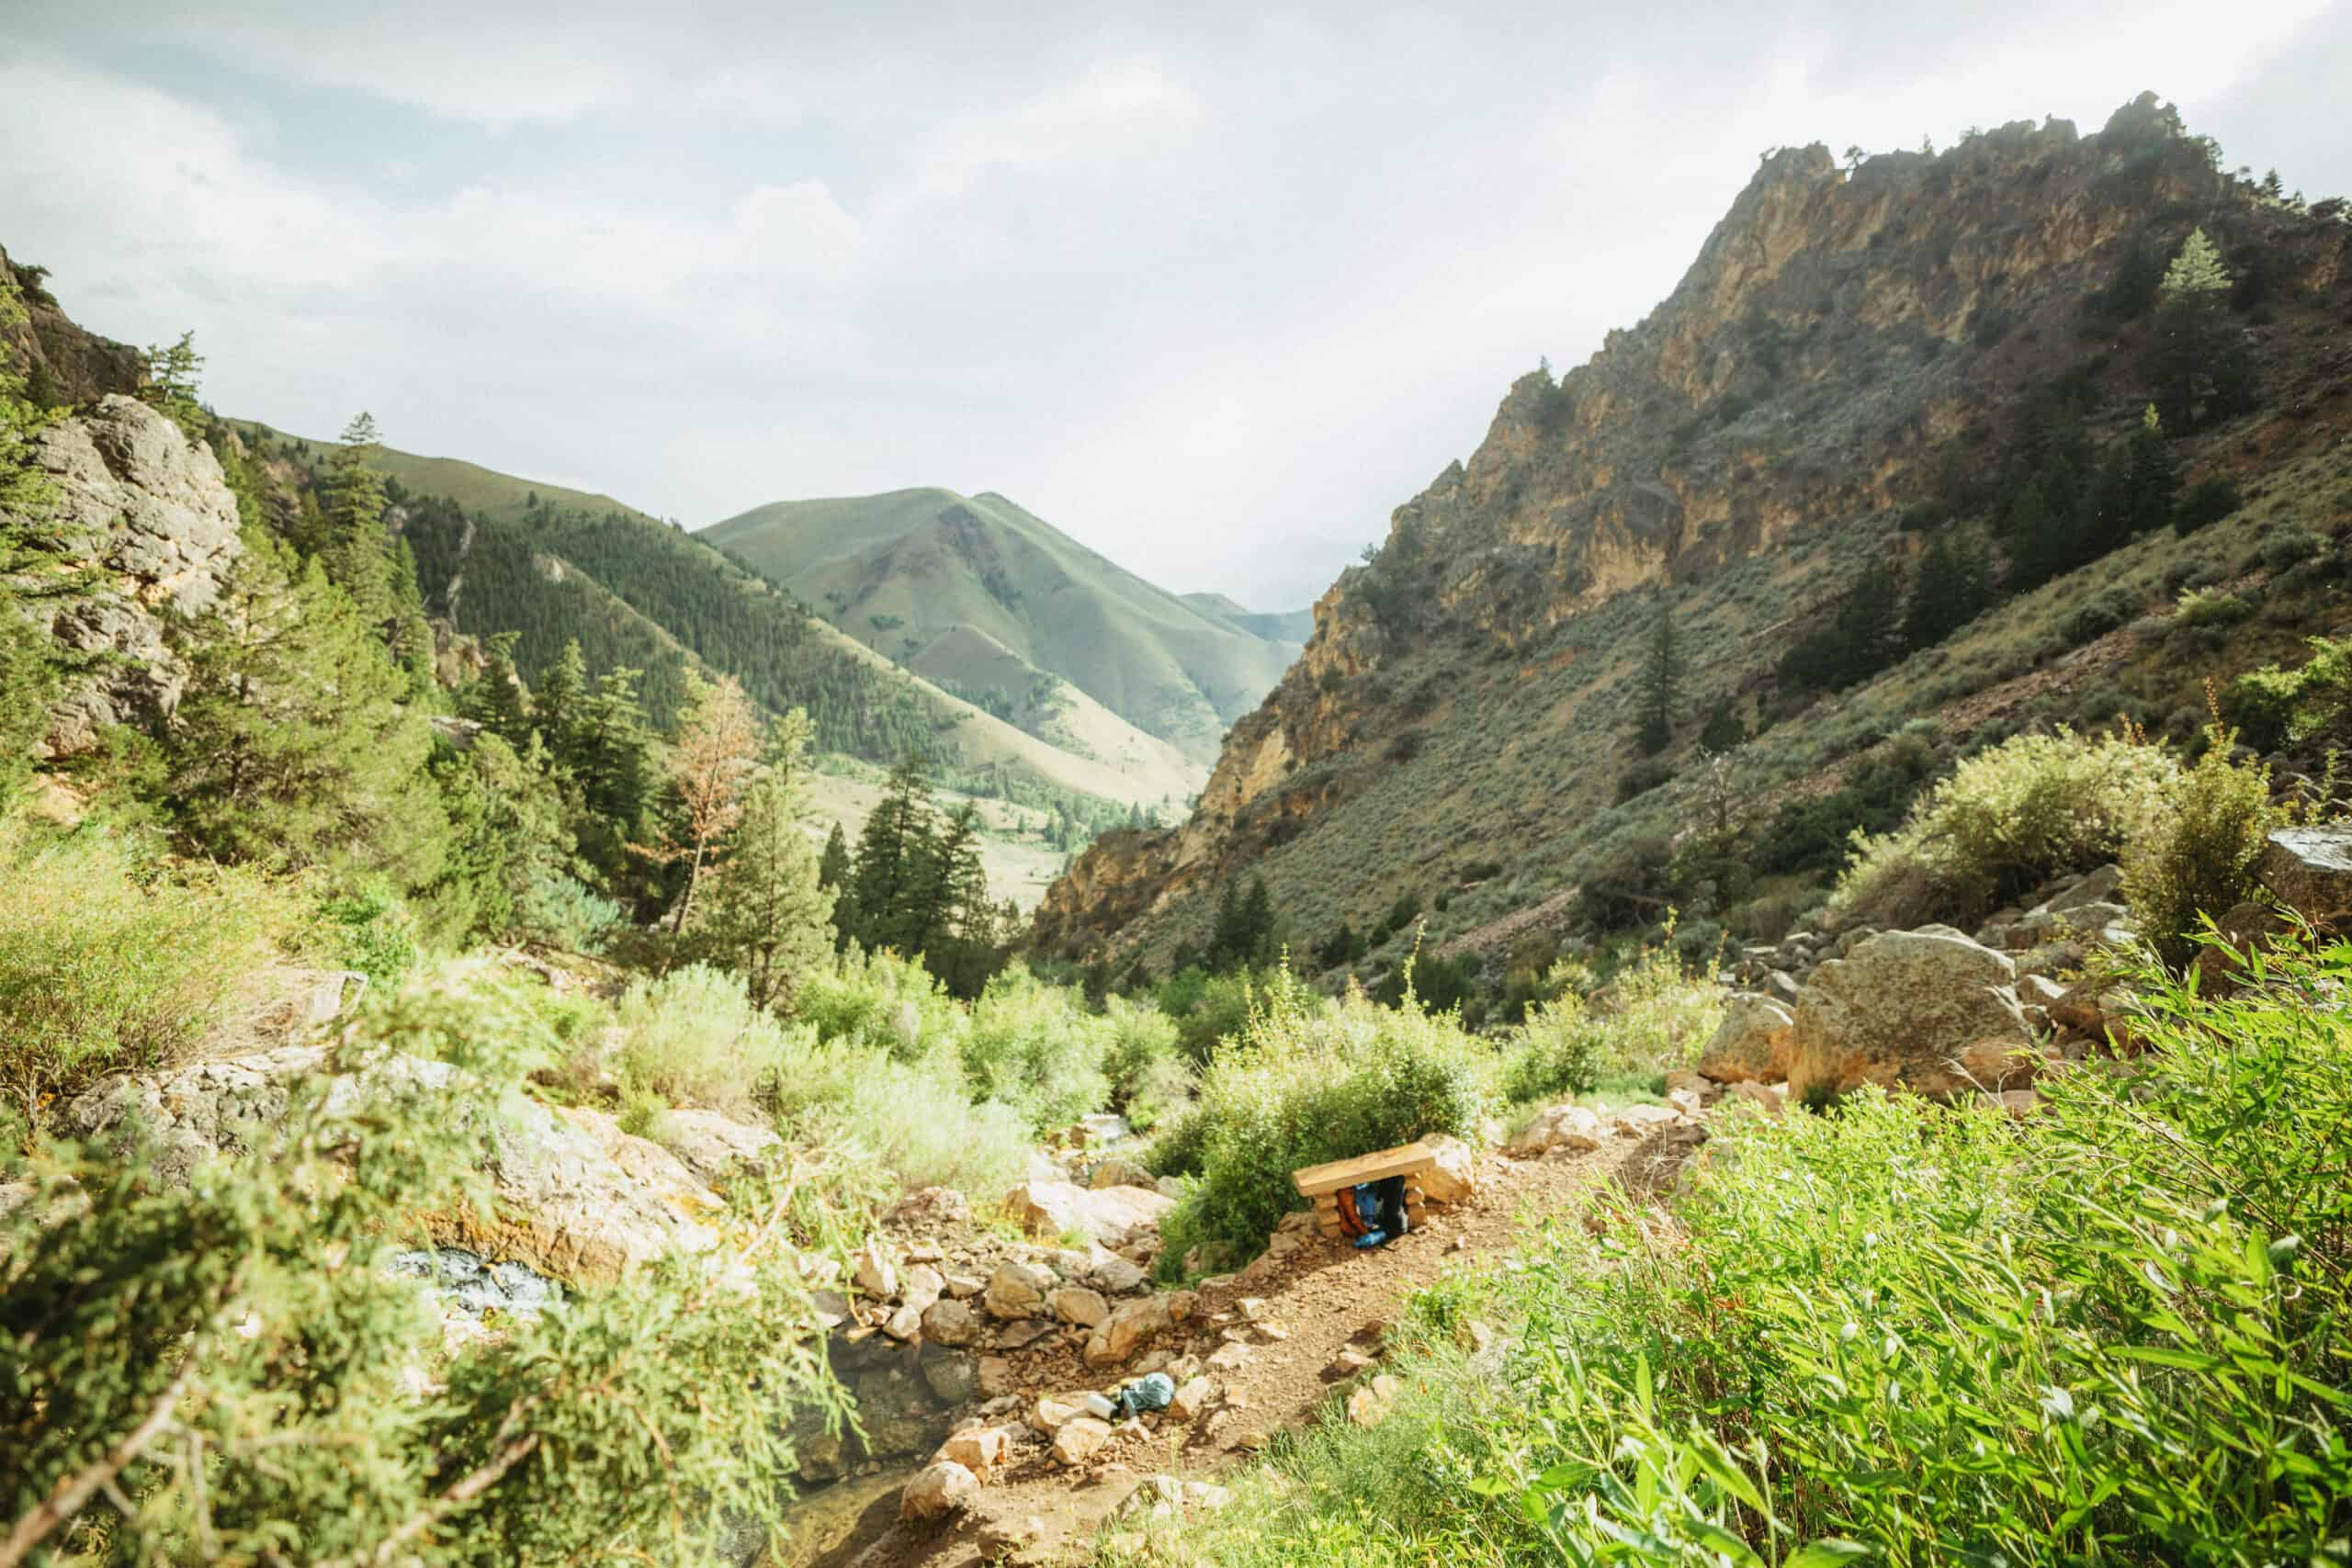 Goldbug Hot Springs (Exactly How To Hike, Soak, & Camp At This Magical Backcountry Springs in Idaho!)